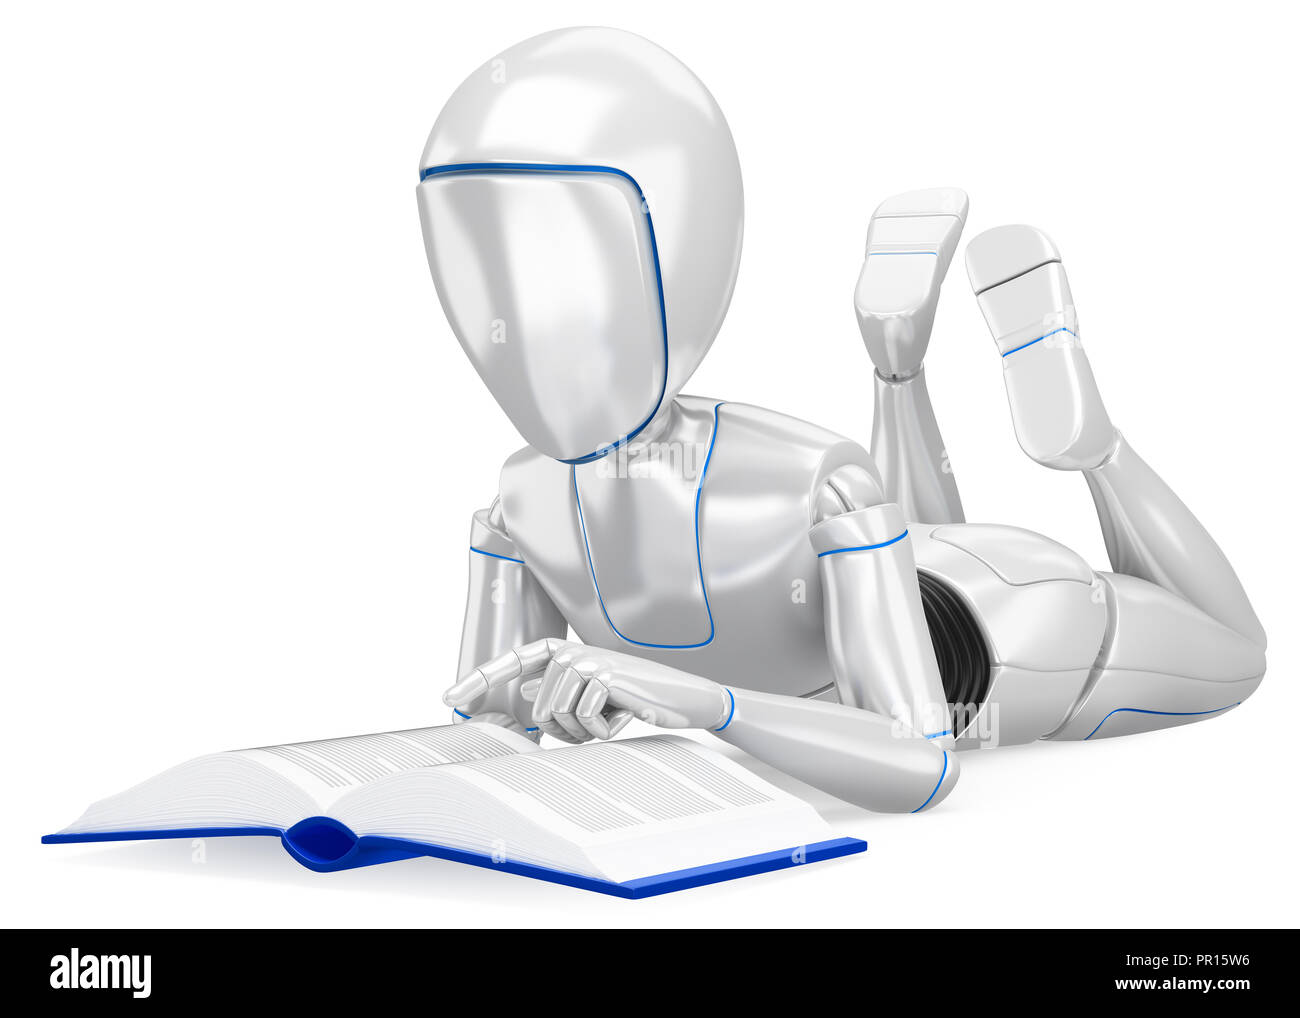 3d futuristic android illustration. Humanoid robot lying reading a book. Isolated white background - Stock Image